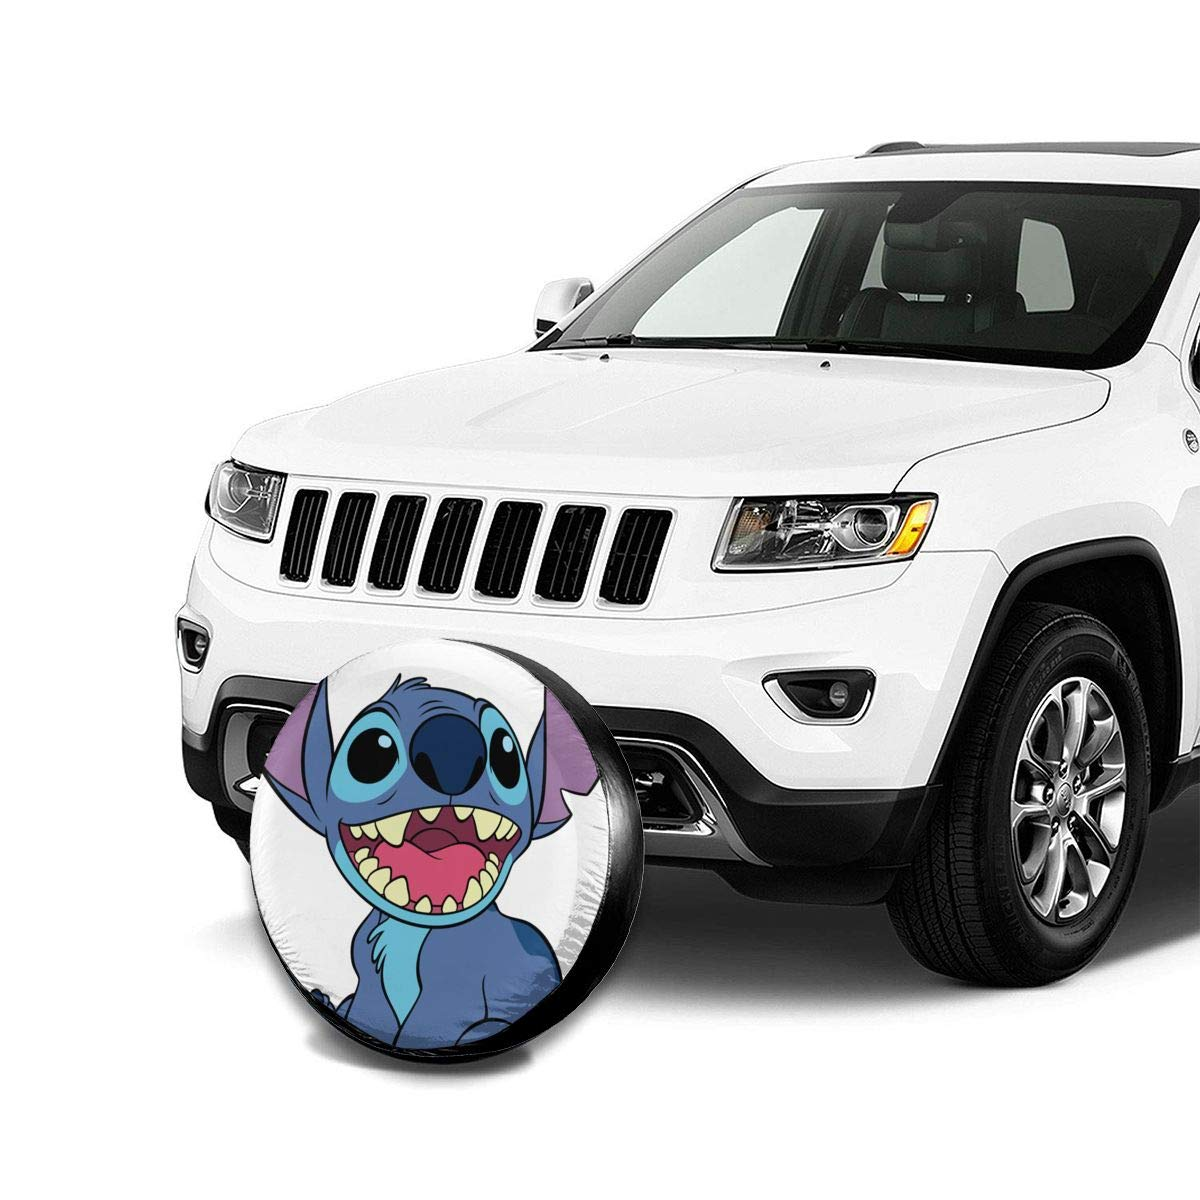 Spare Tire Cover Lilo Stitch Universal Waterproof Dust-Proof Wheel Covers